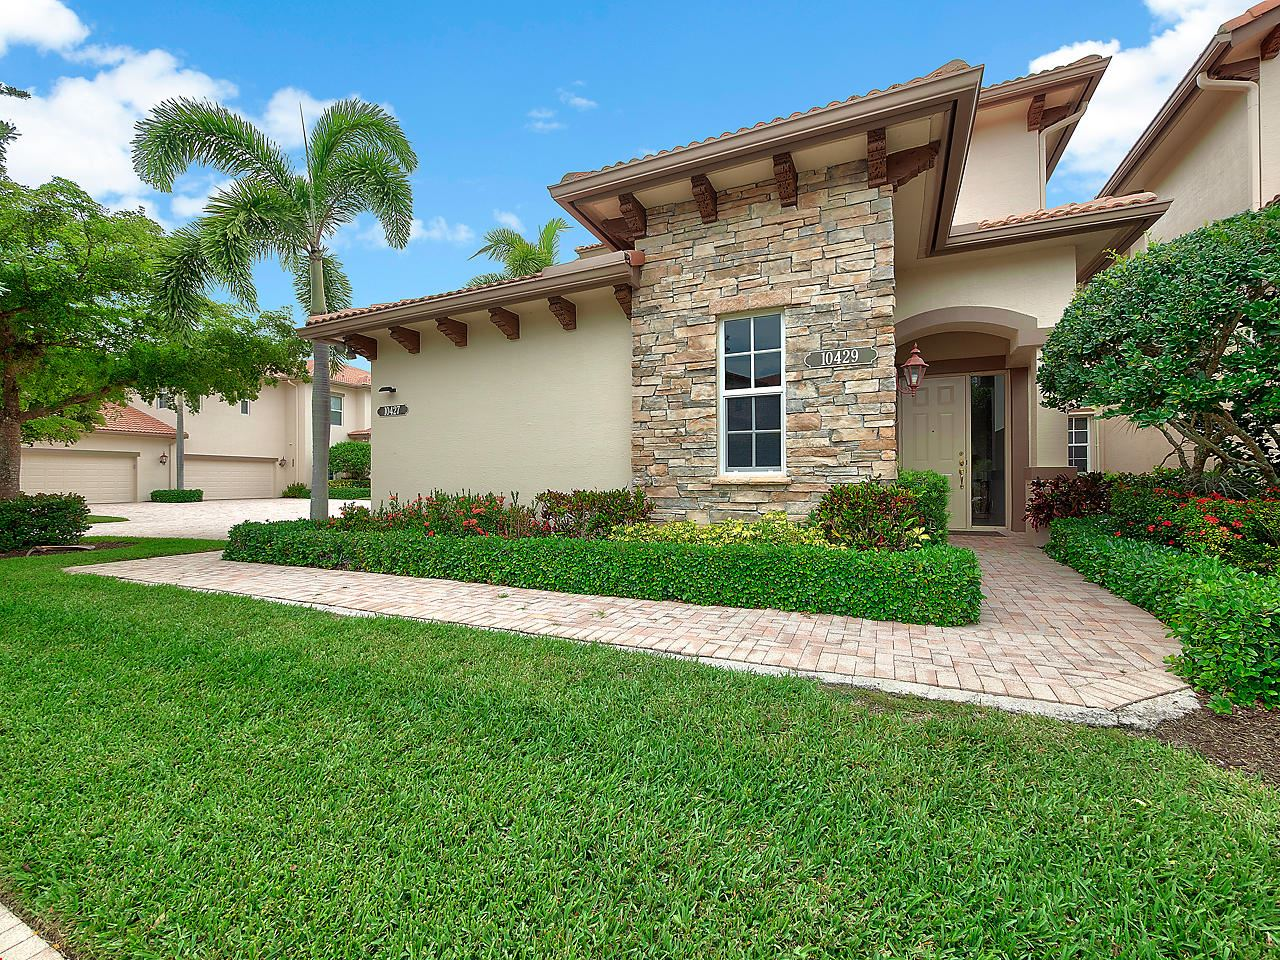 Photo of 10429 Orchid Reserve Drive, West Palm Beach, FL 33412 (MLS # RX-10675749)